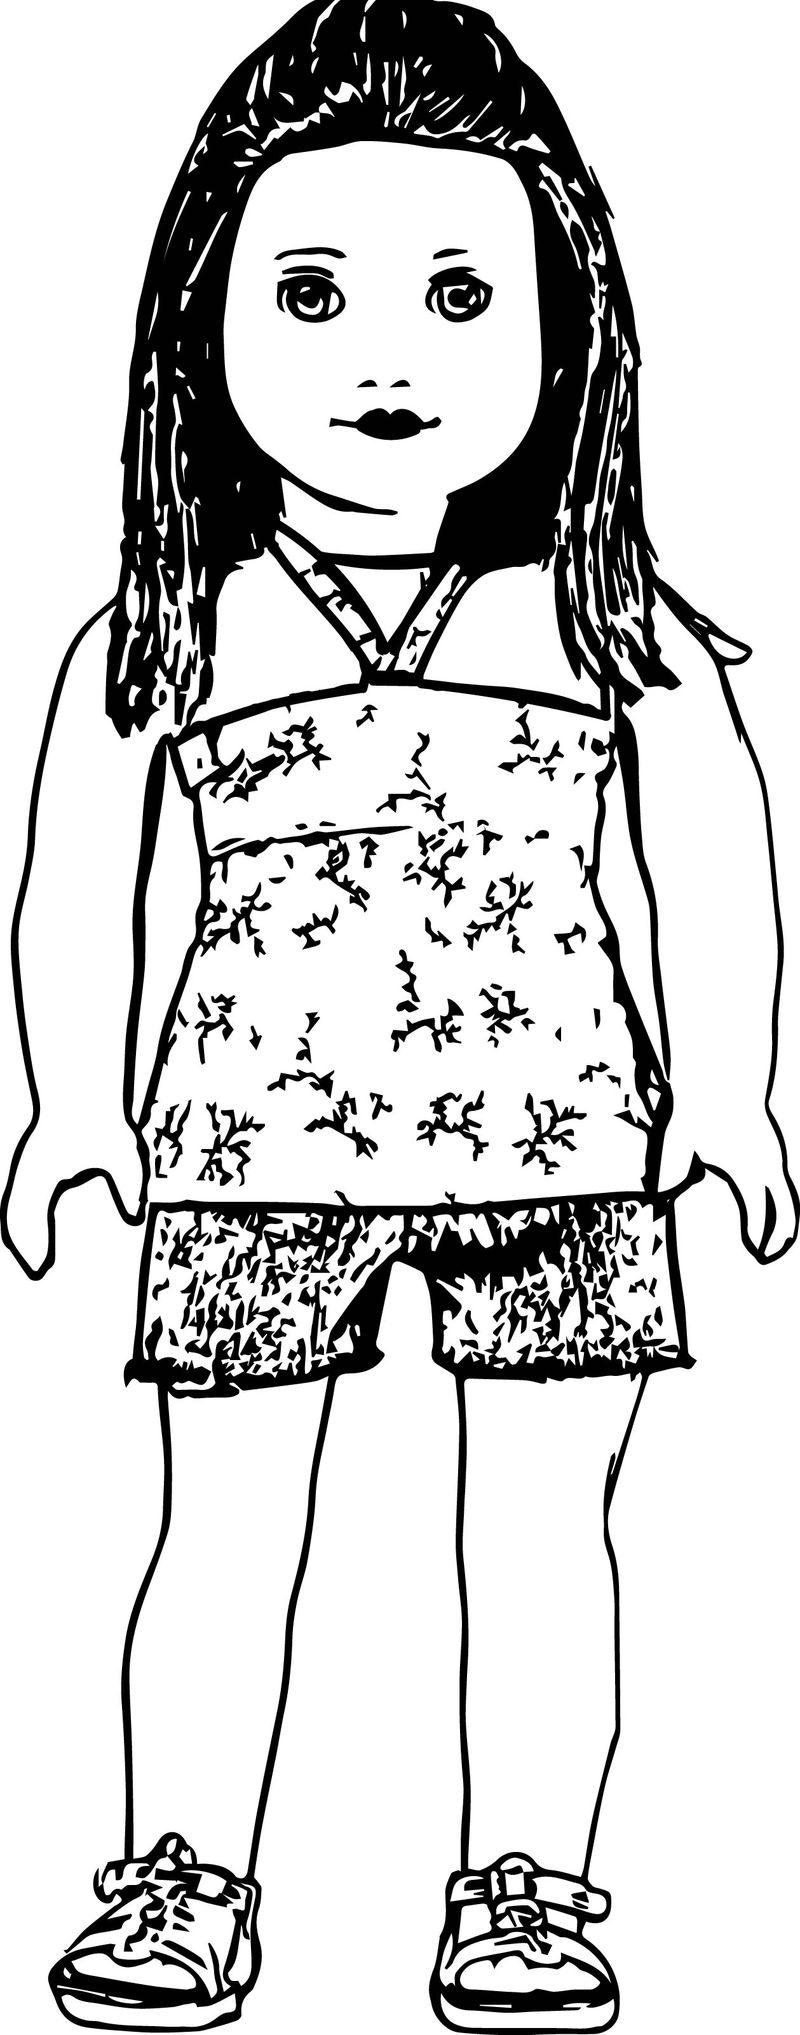 pictures of american girl dolls to color american girl doll free printables girl dolls color to pictures of american